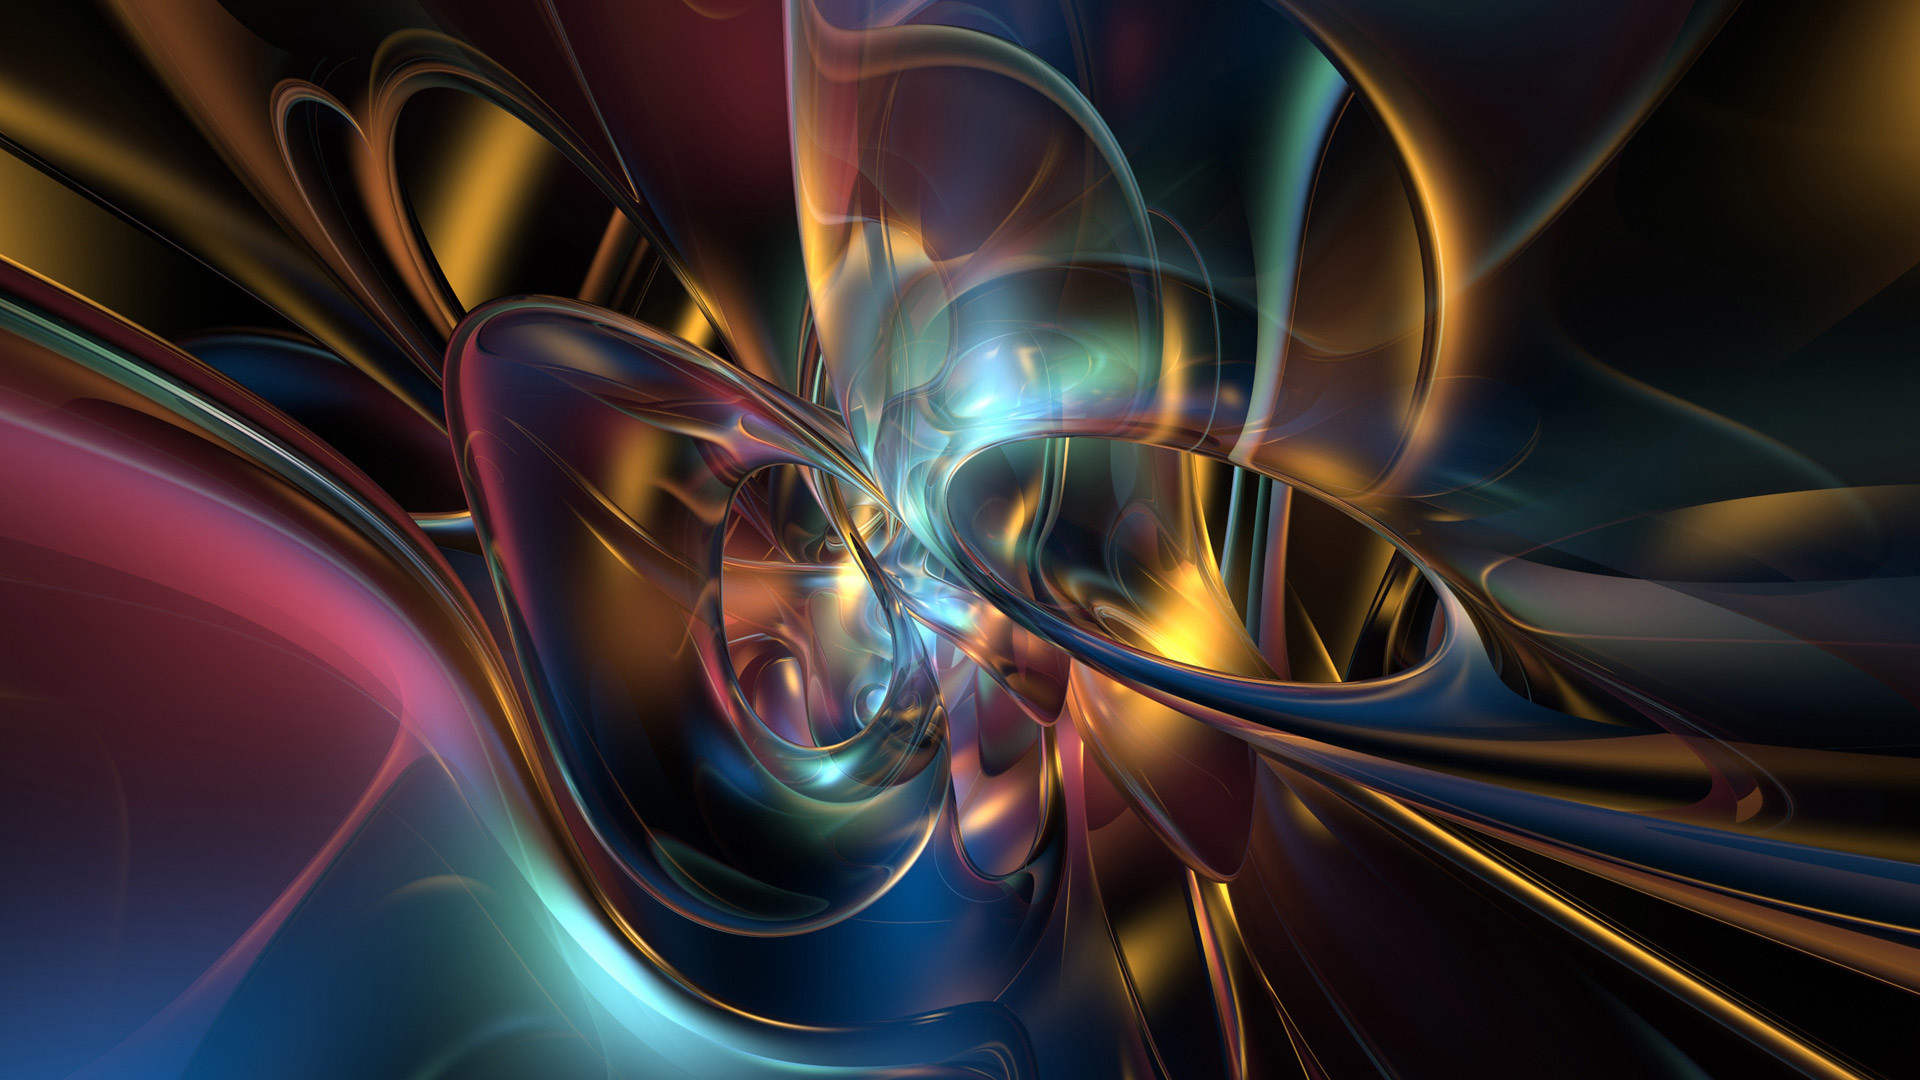 1080p Abstract Wallpaper 66 Images